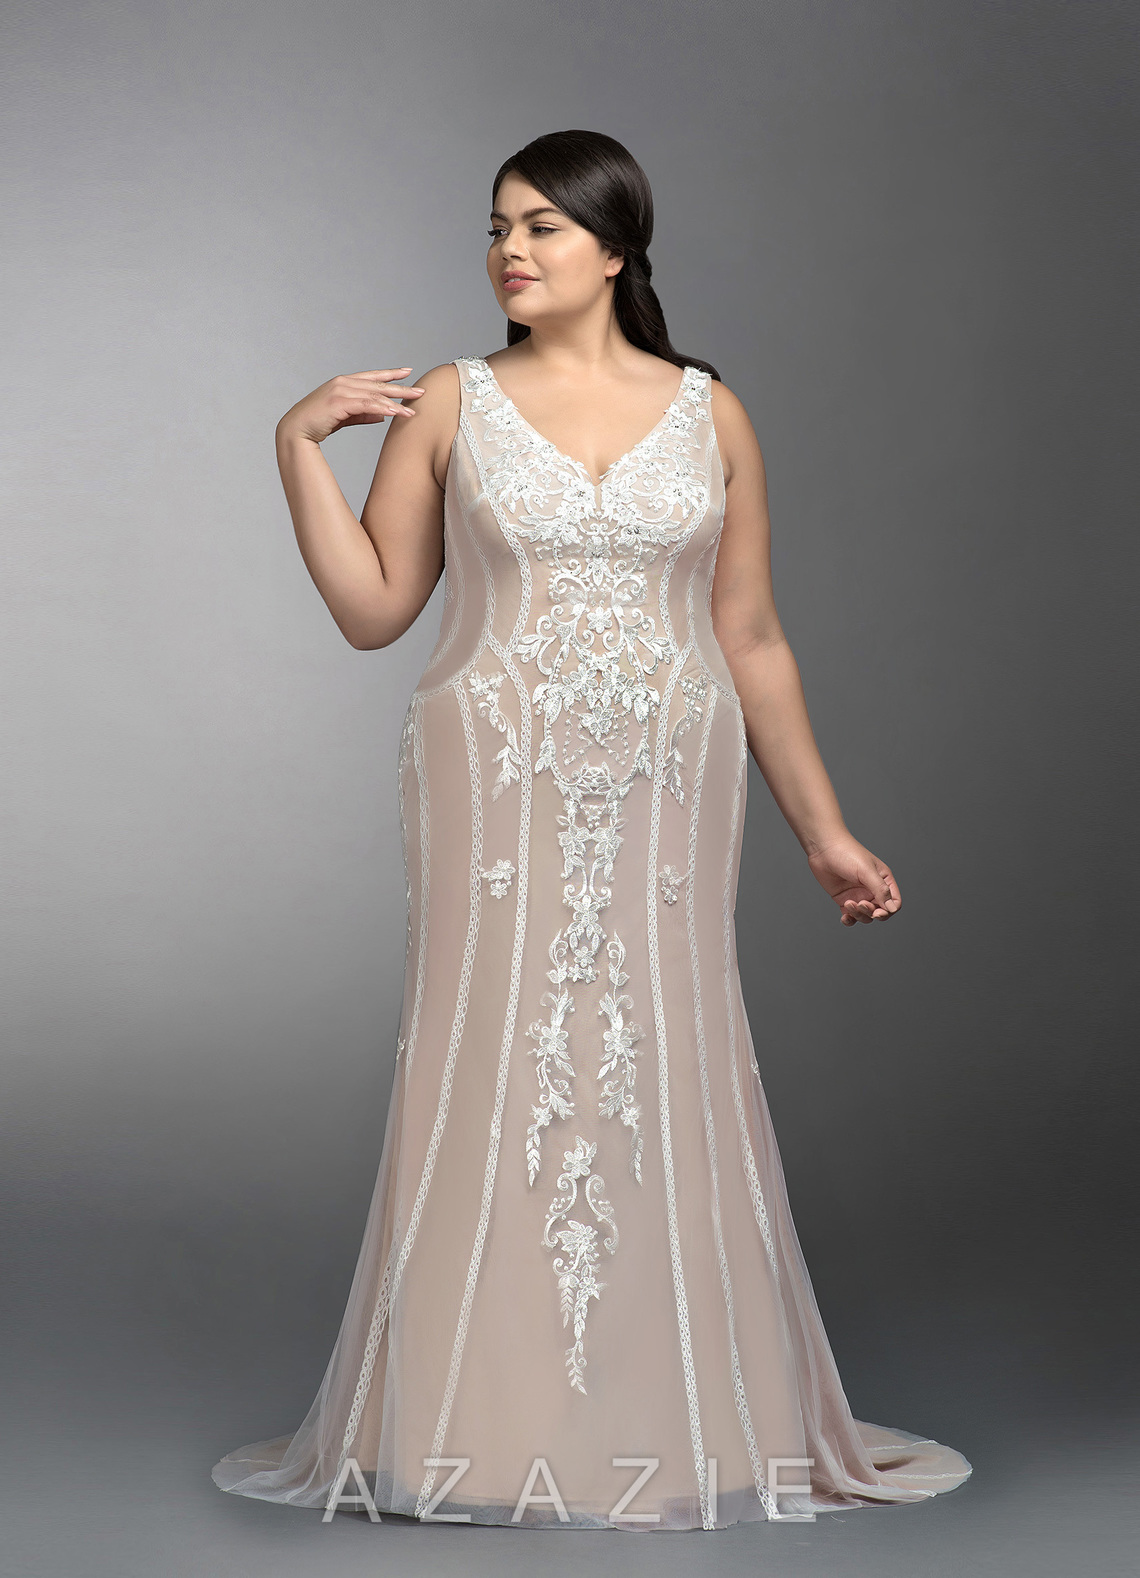 A sleeveless full length wedding dress